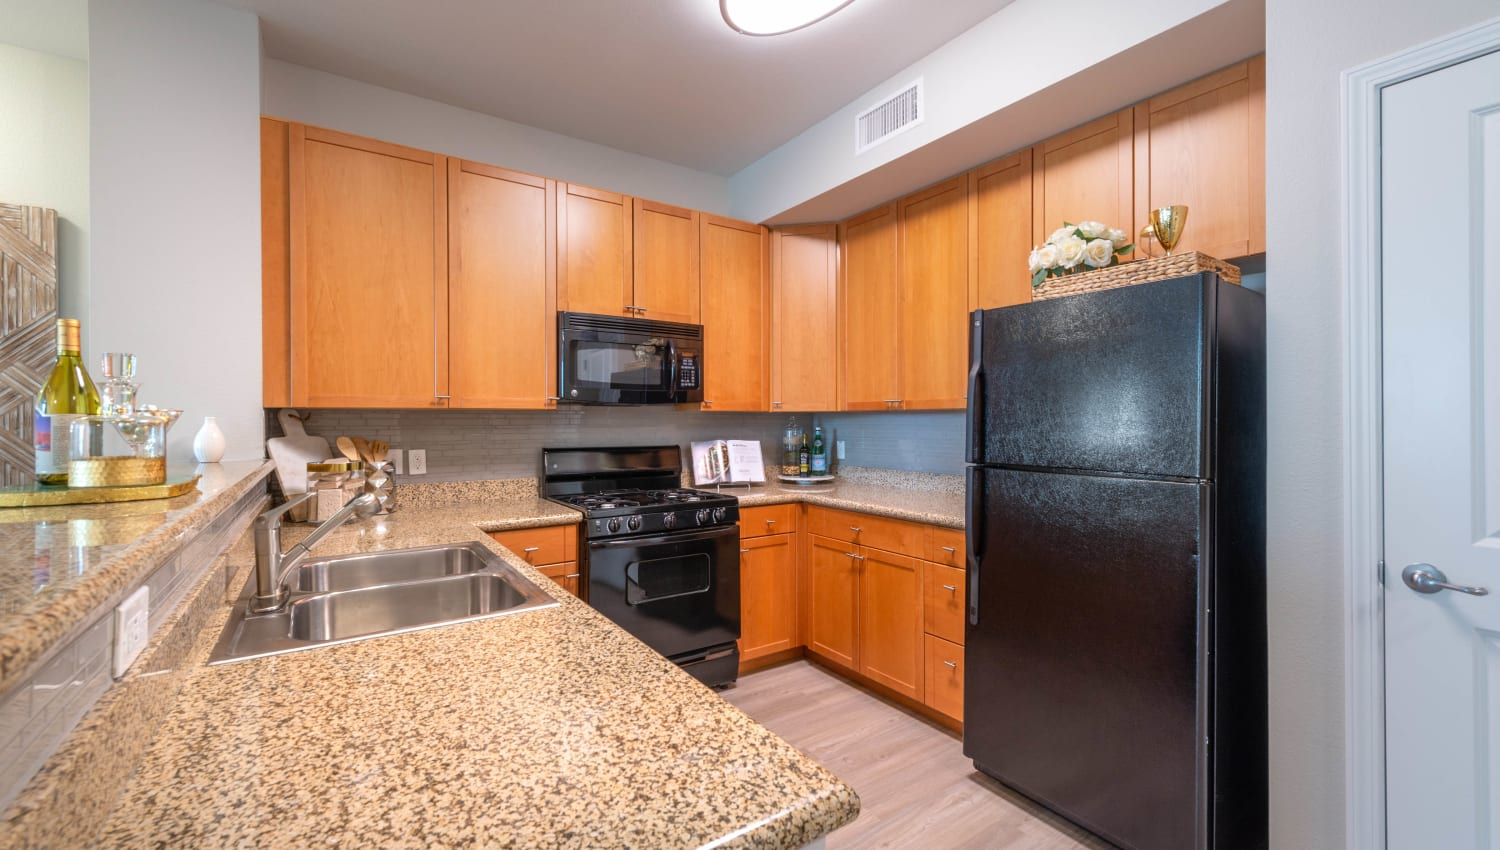 Black appliances and custom wood cabinetry in a model home's kitchen at Olympus at Daybreak in South Jordan, Utah